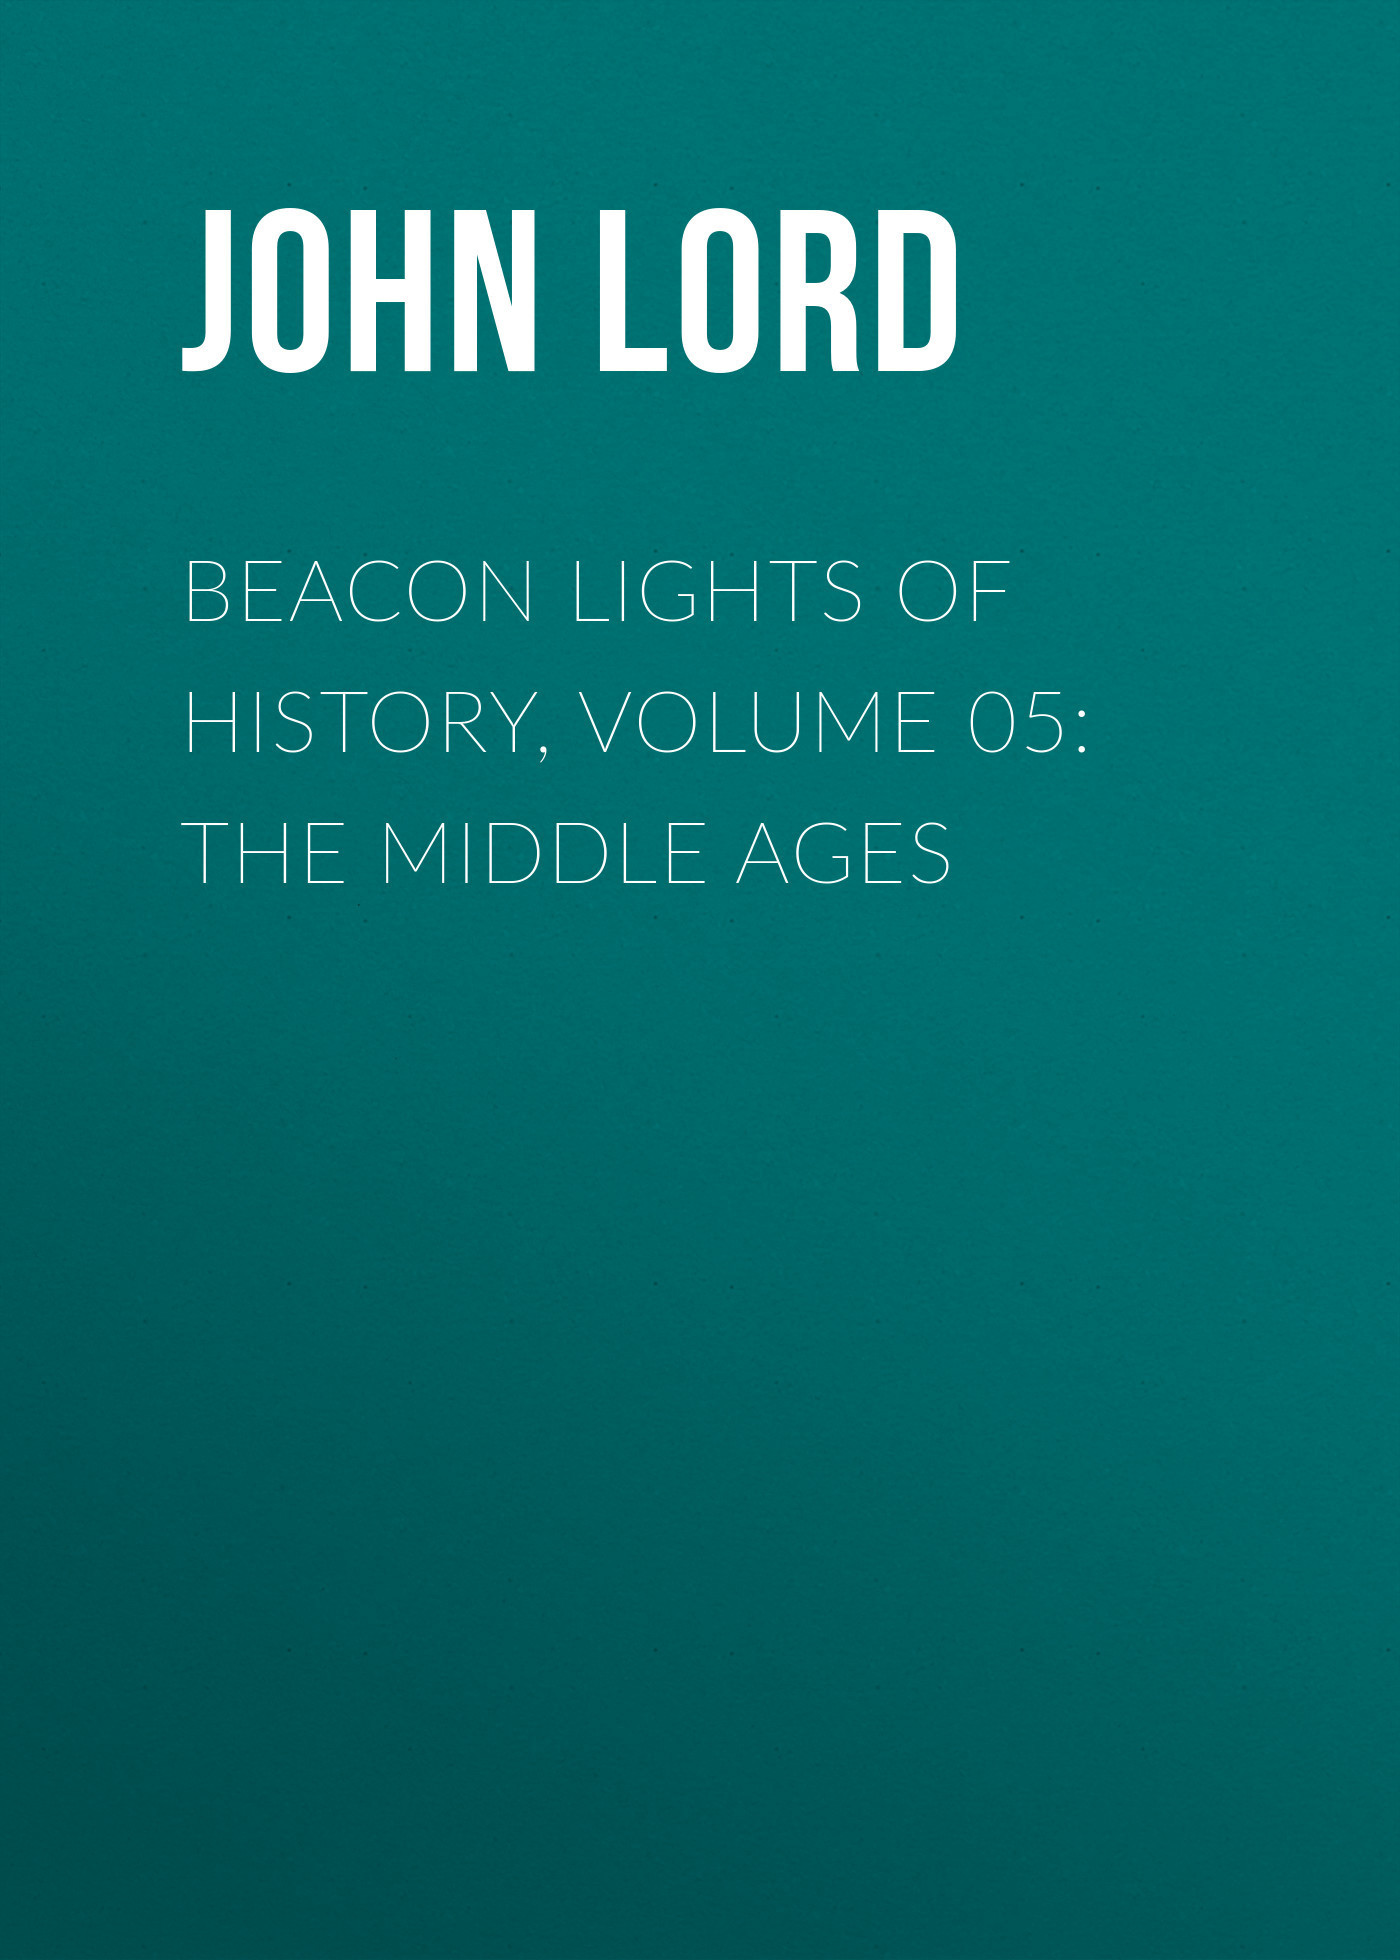 John Lord Beacon Lights of History, Volume 05: The Middle Ages the complete history of middle earth